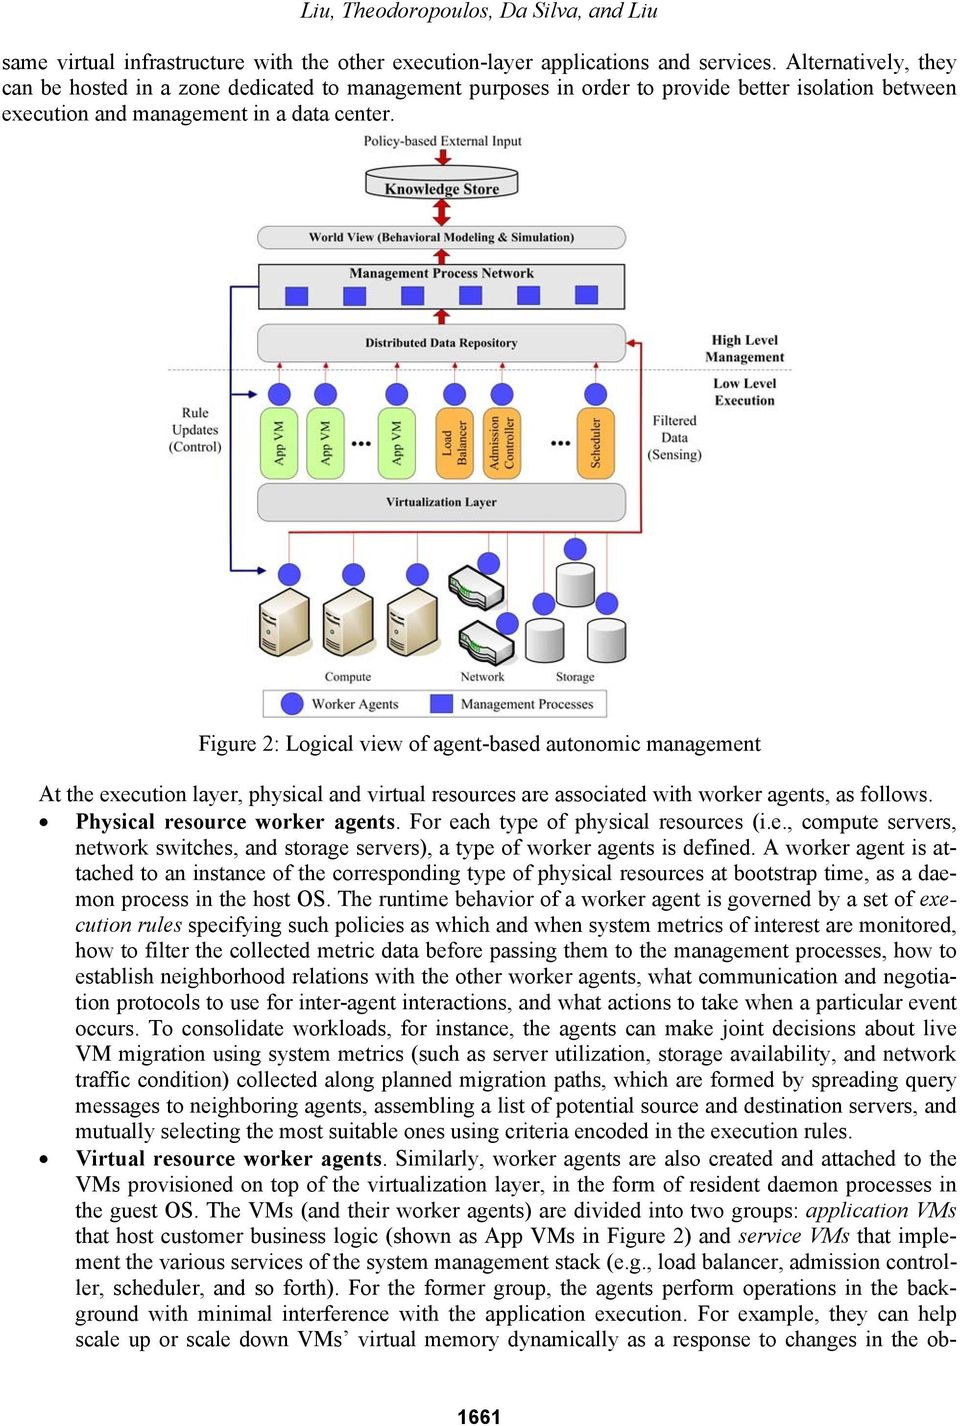 Figure 2: Logical view of agent-based autonomic management At the execution layer, physical and virtual resources are associated with worker agents, as follows. Physical resource worker agents.